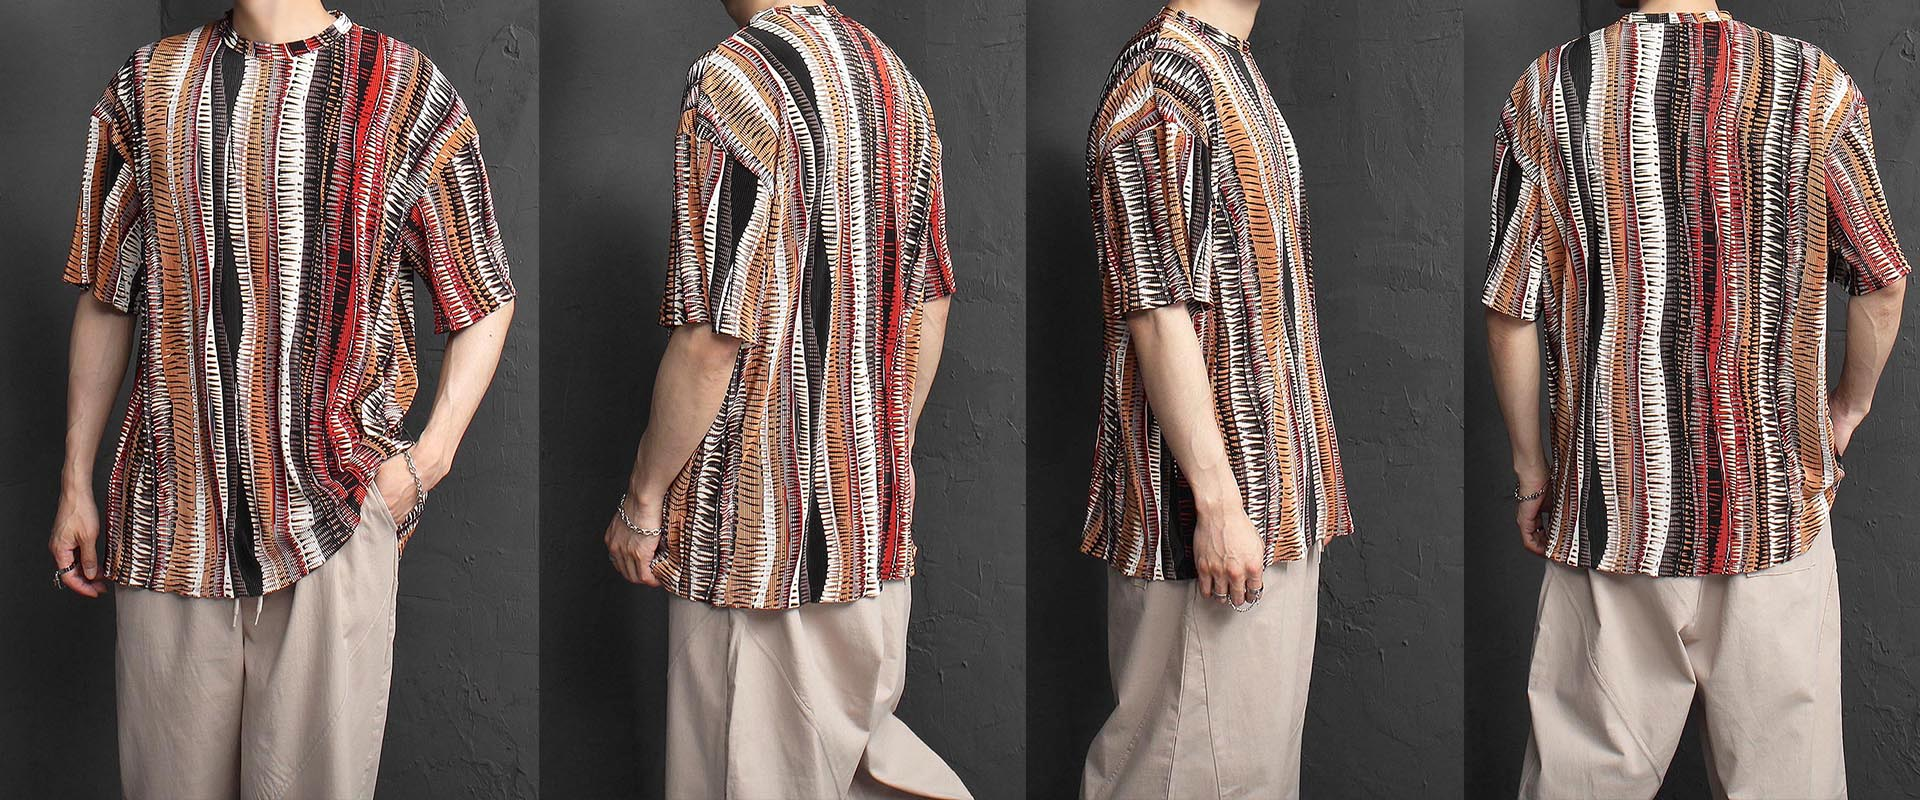 Ice Indian Wrinkle Pleats Short Sleeve Tee 1277